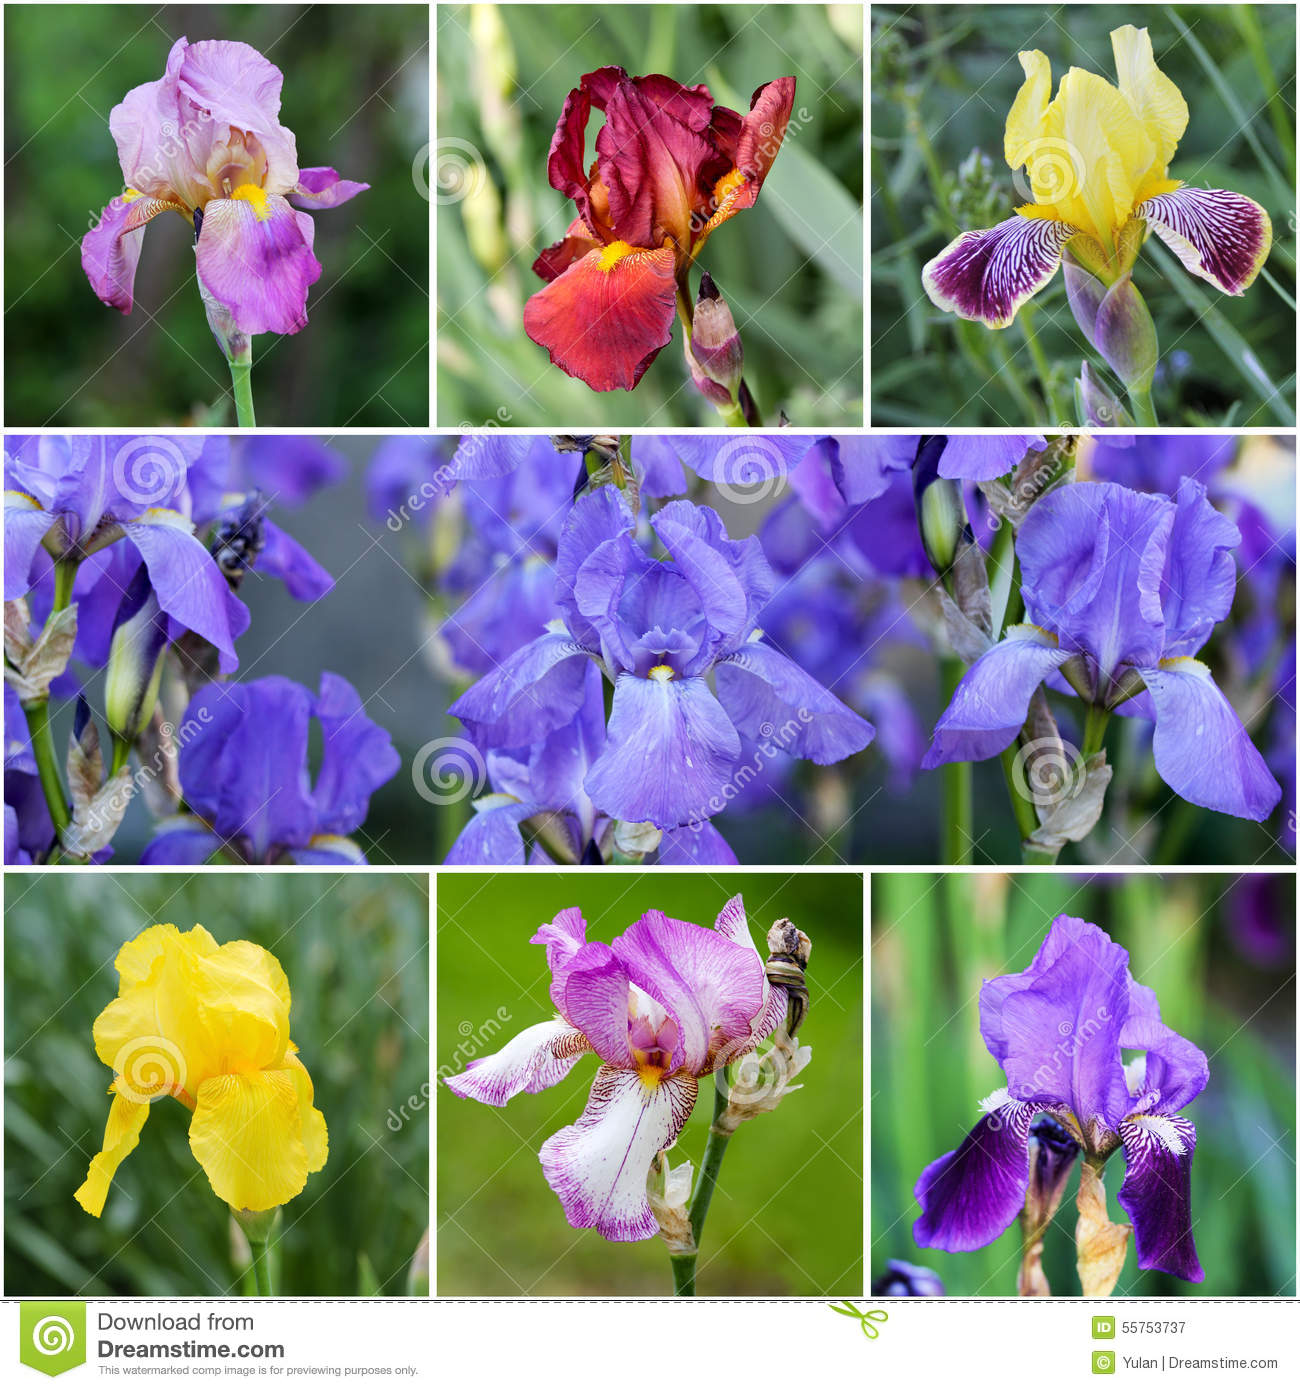 Iris images flowers savingourboysfo iris flowers stock photo image natural flower izmirmasajfo Choice Image